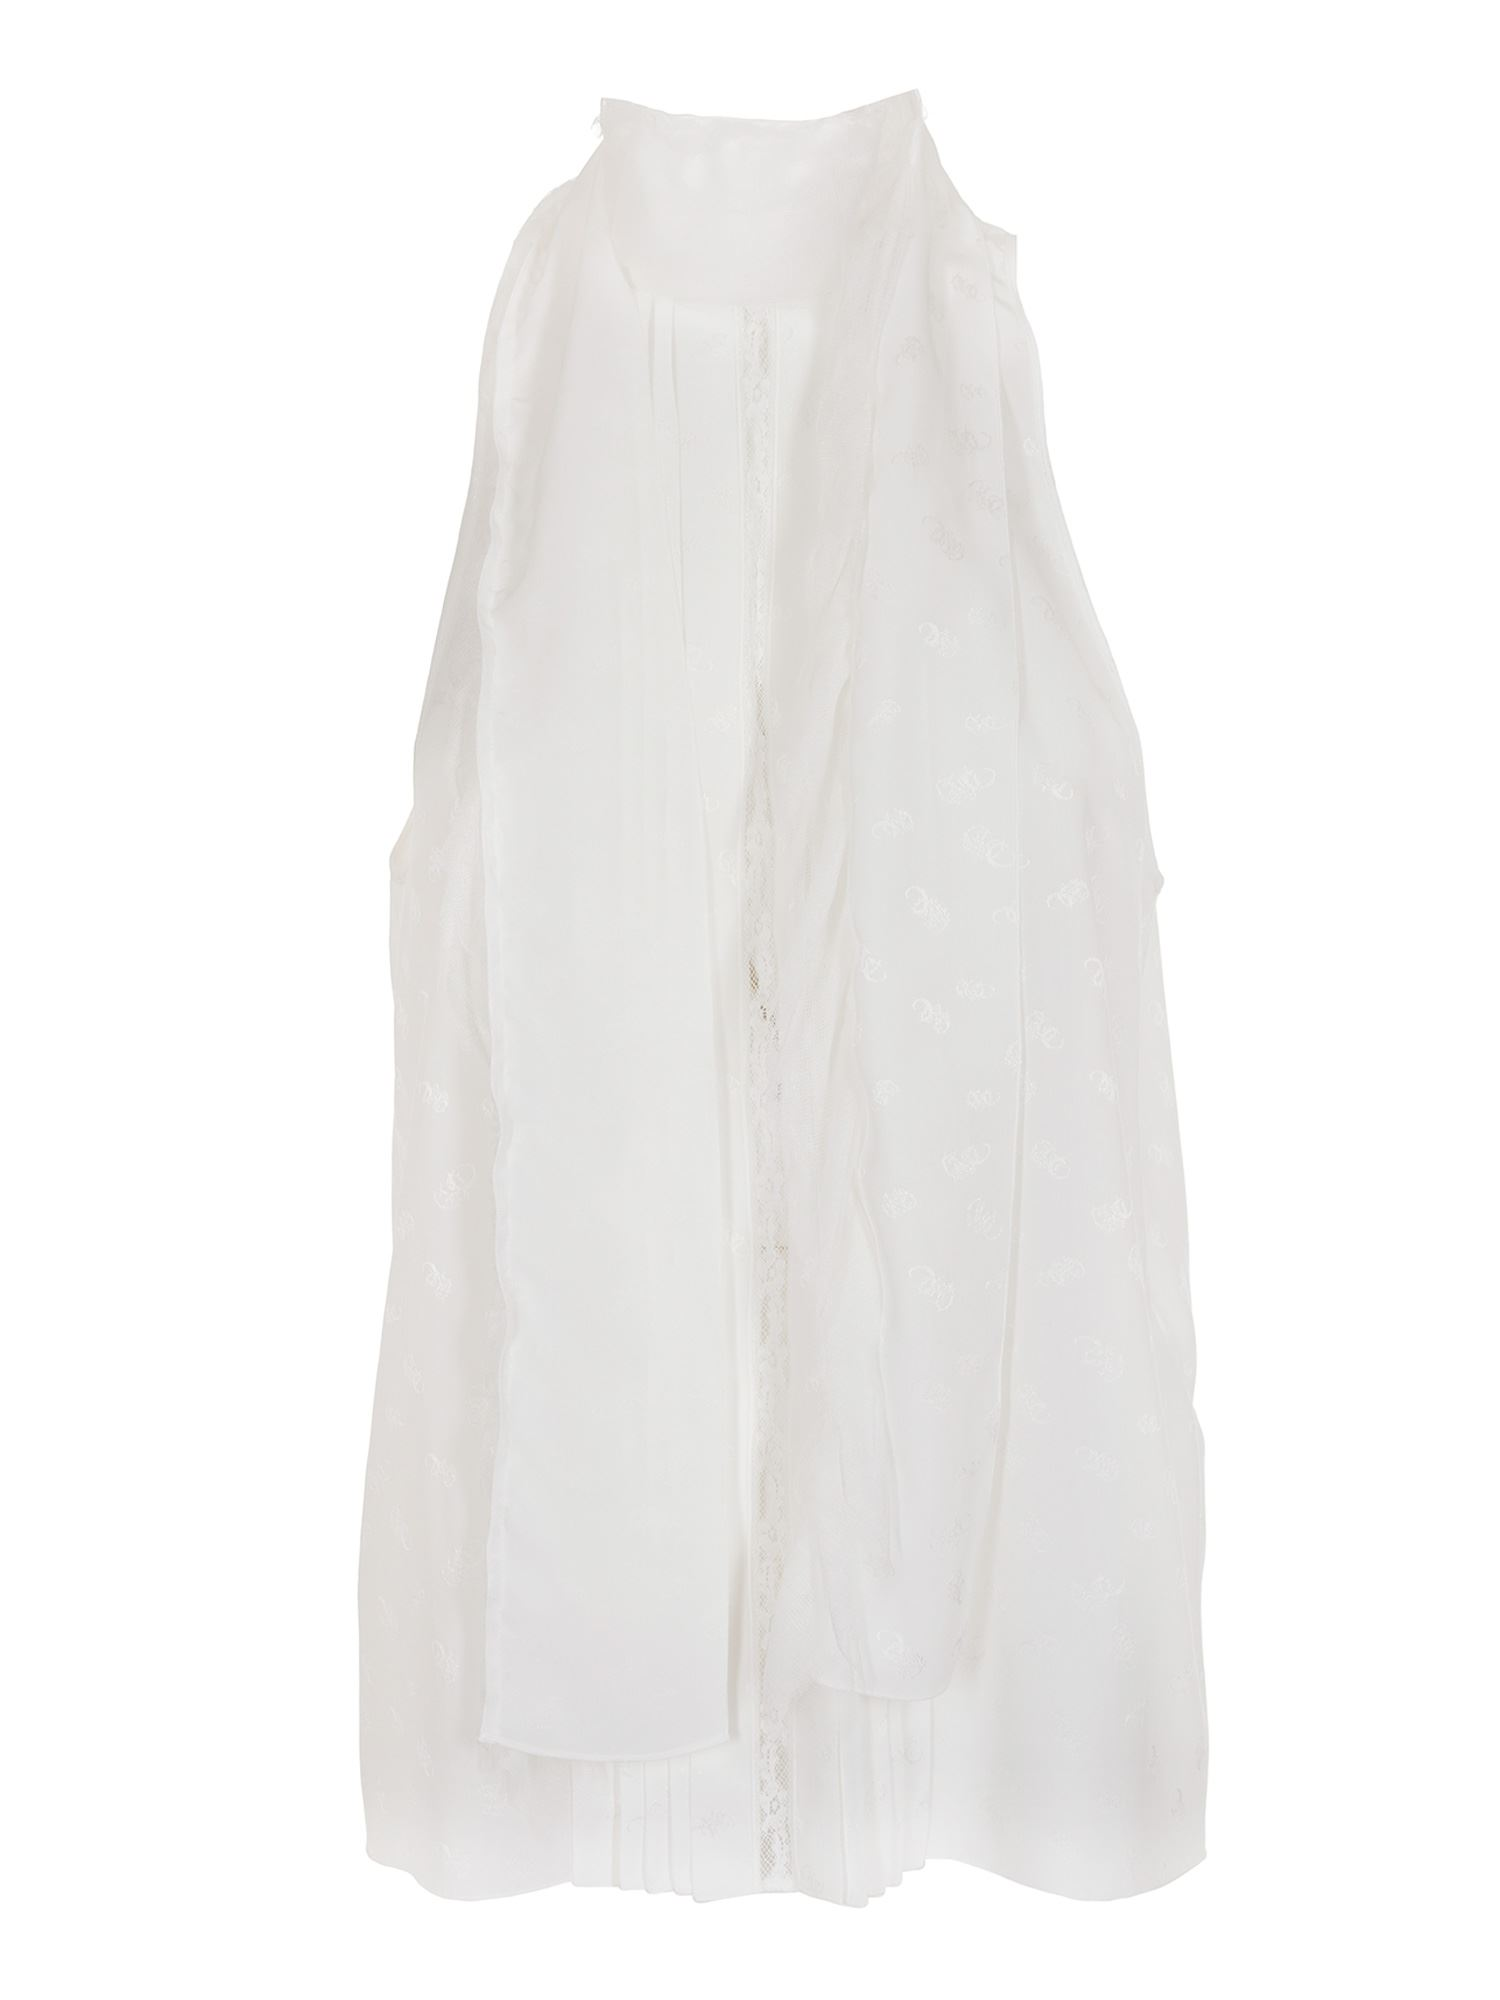 Chloé SLEEVELESS SHIRT IN WHITE